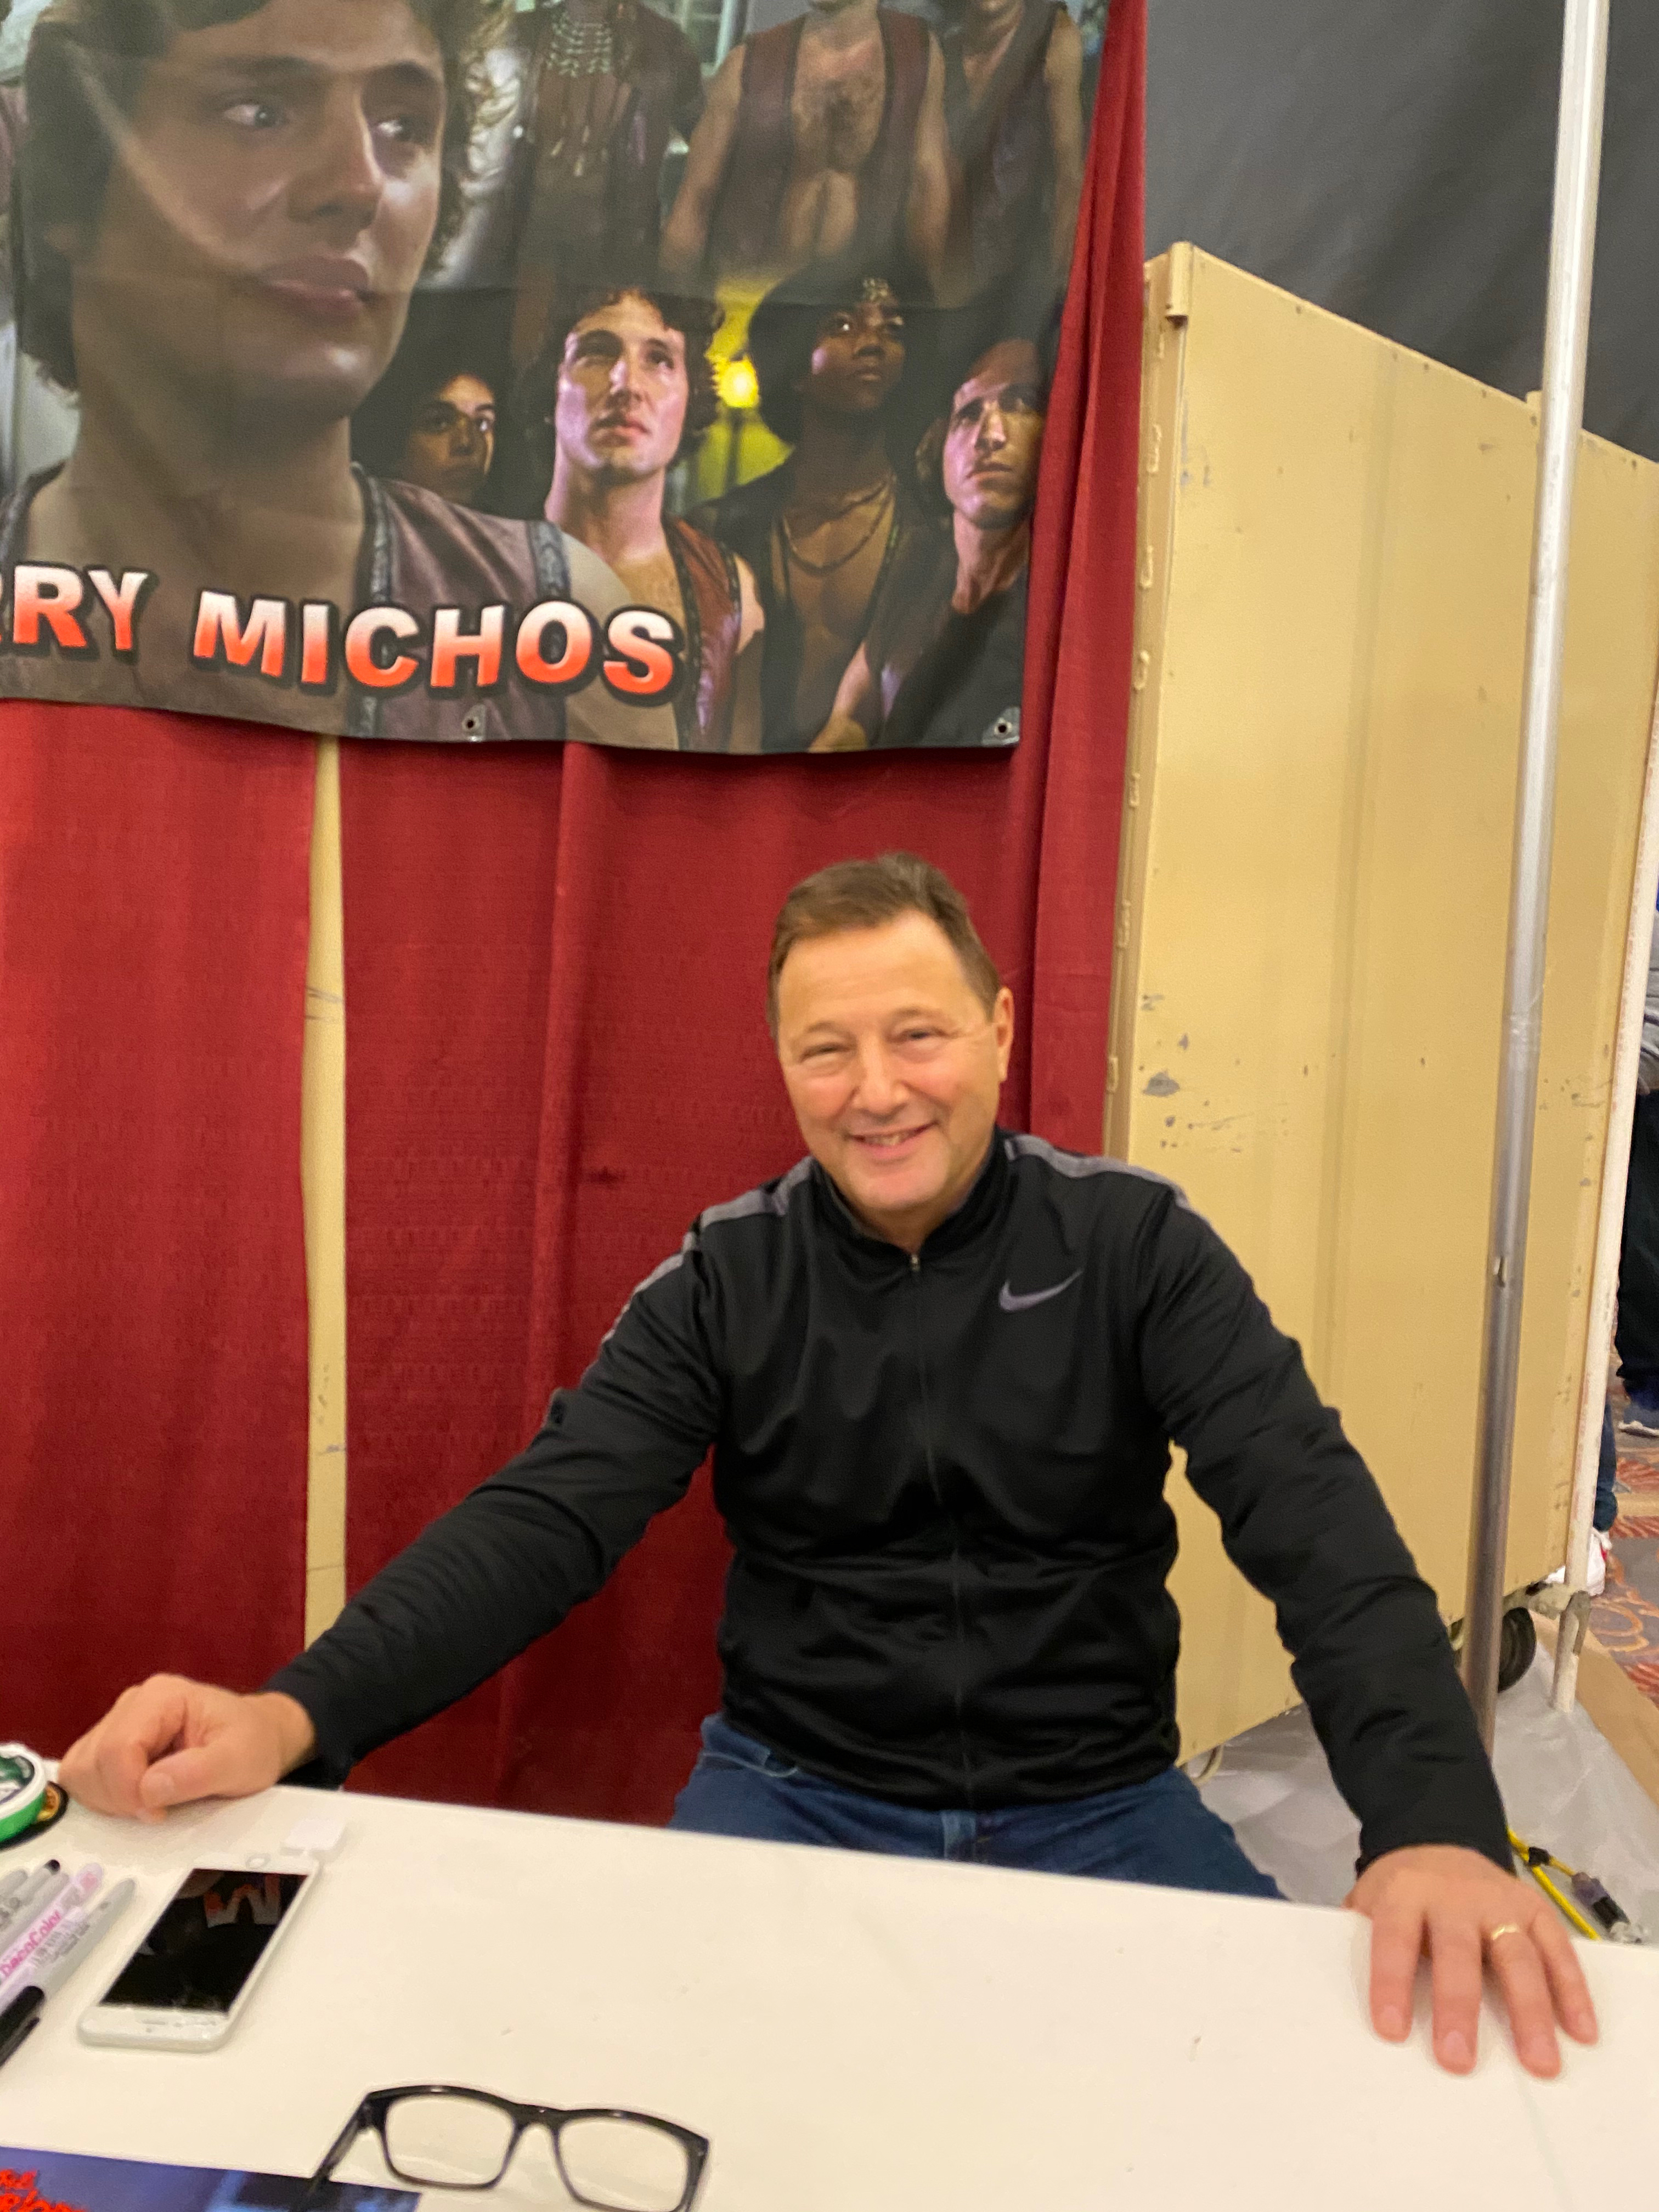 Terry Michos (The Warriors).